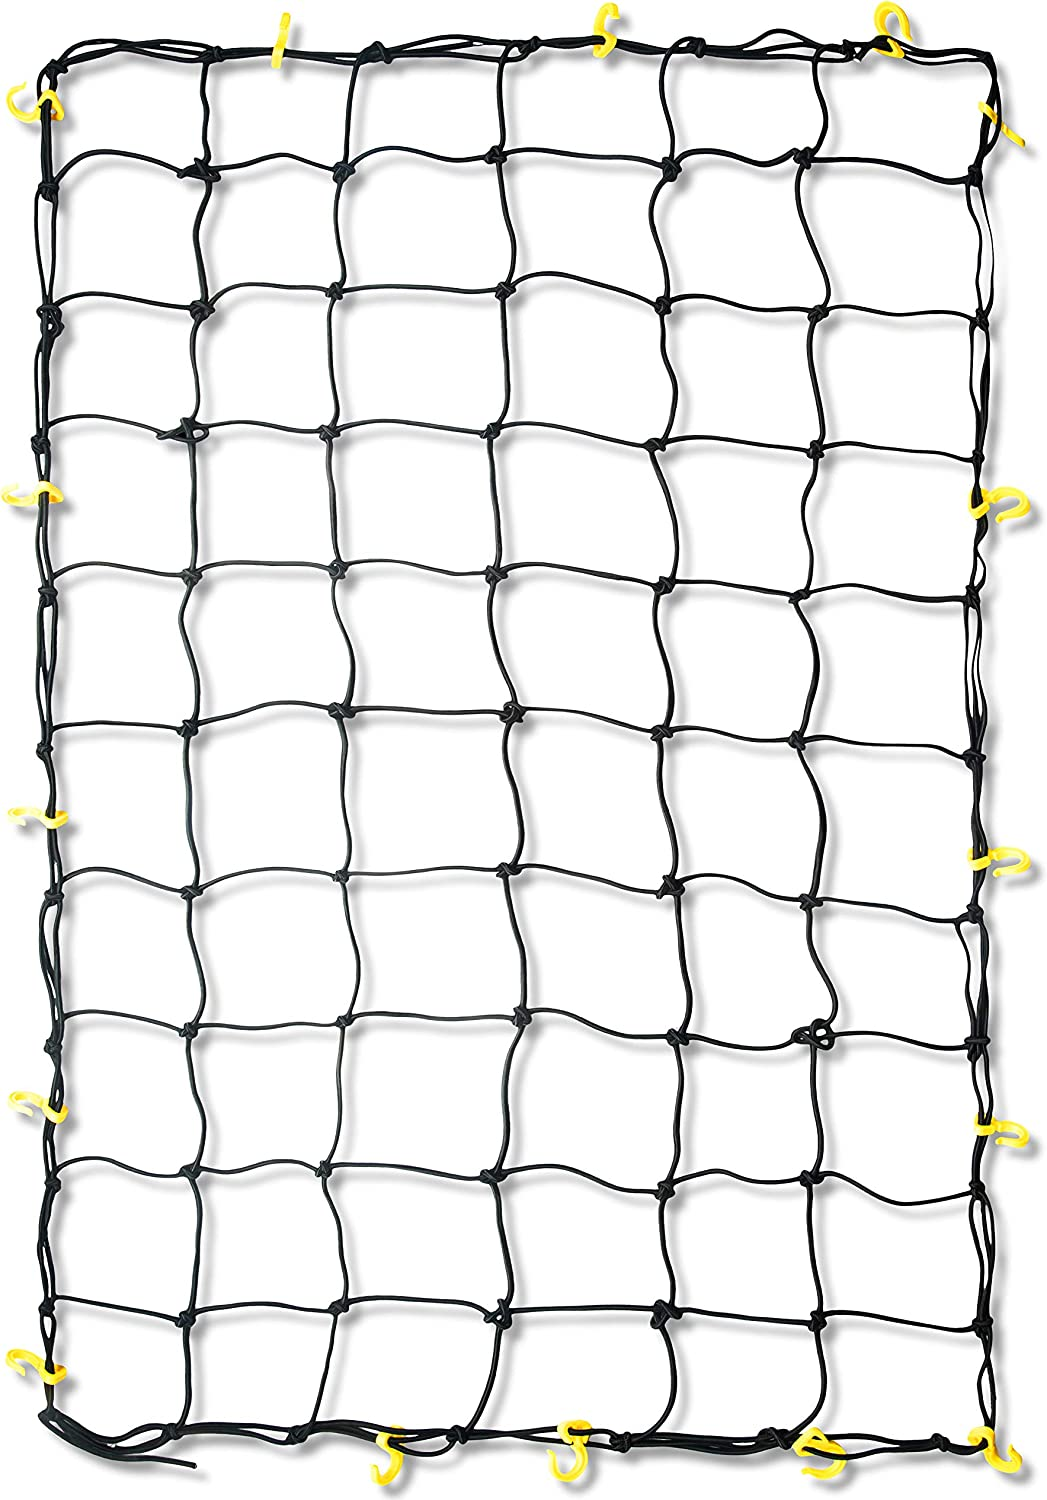 2 Pack of Black 15X15 Cargo Net Featuring 6 Adjustable Hooks /& Tight 2x2 Mesh Red 2 Pack